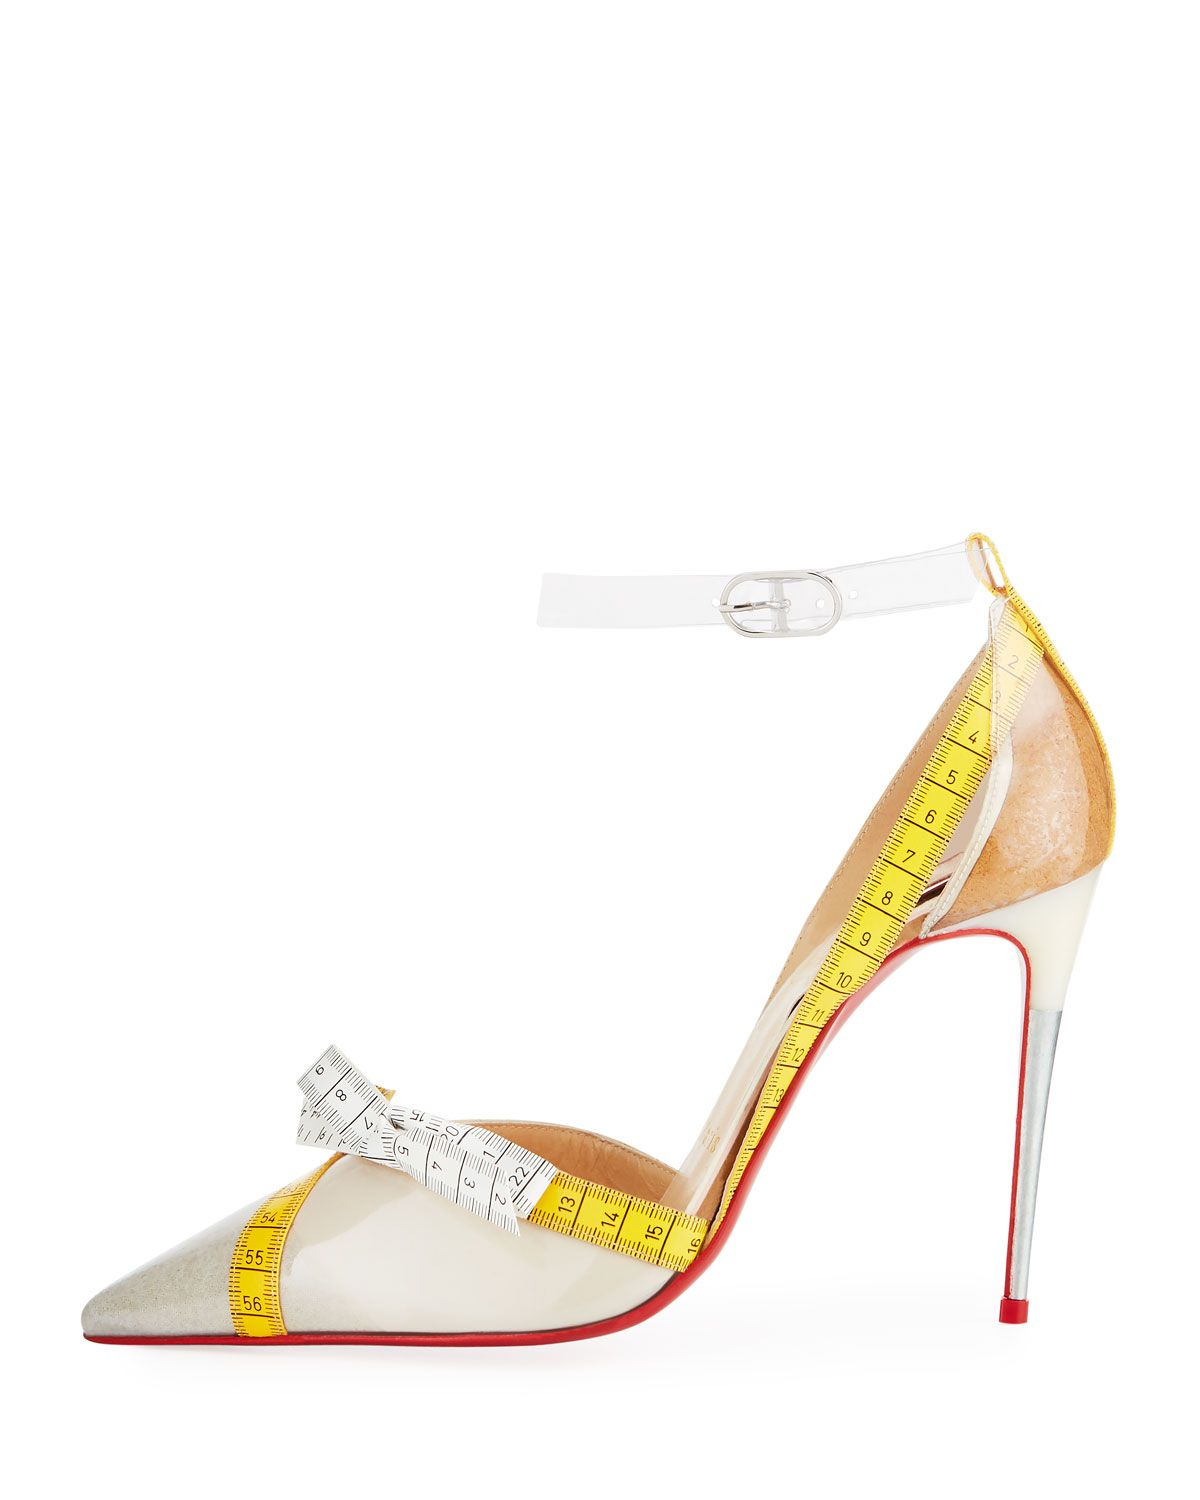 956587e6a19 Christian Louboutin Metripump Measuring Tape Patent Red Sole Pumps ...